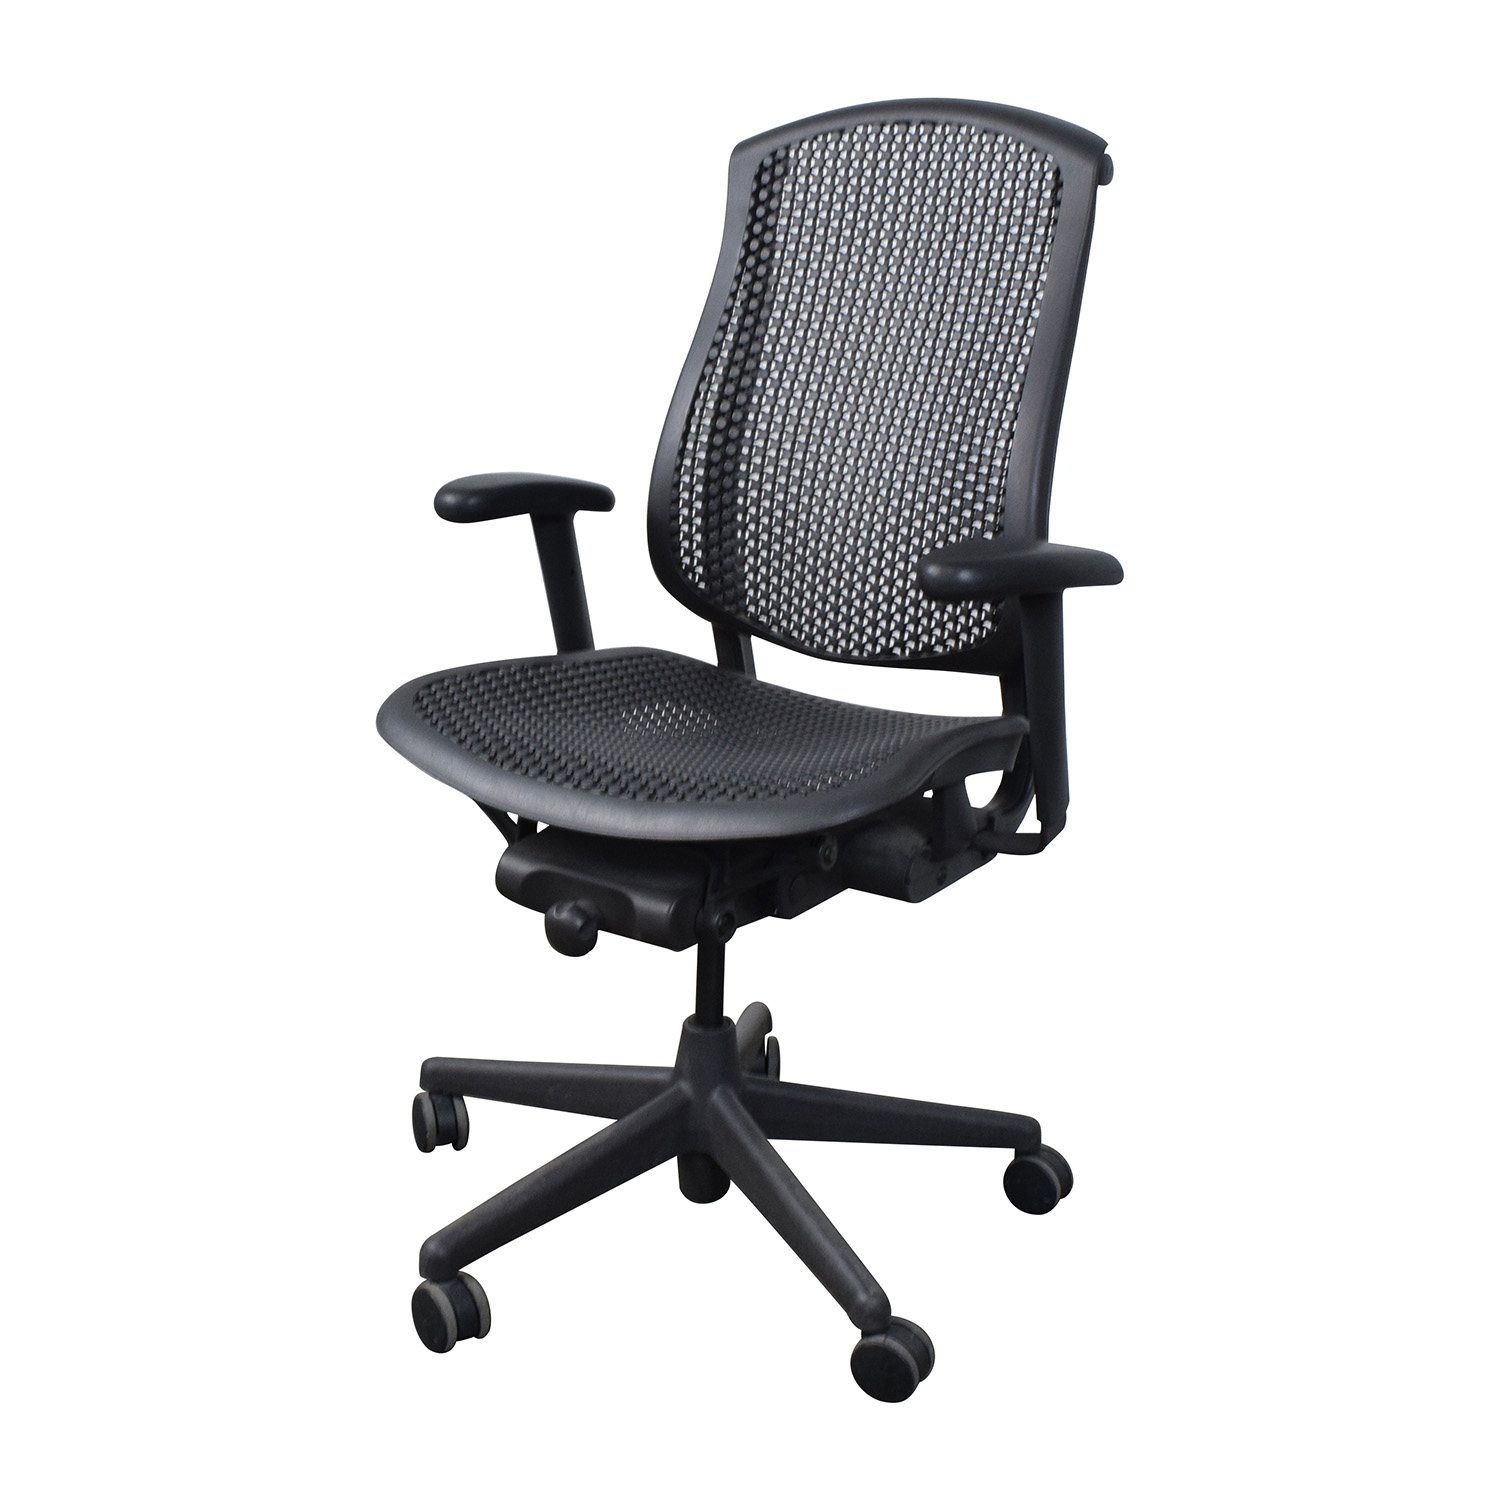 desk chair herman miller eiffel wood legs 63 off celle office